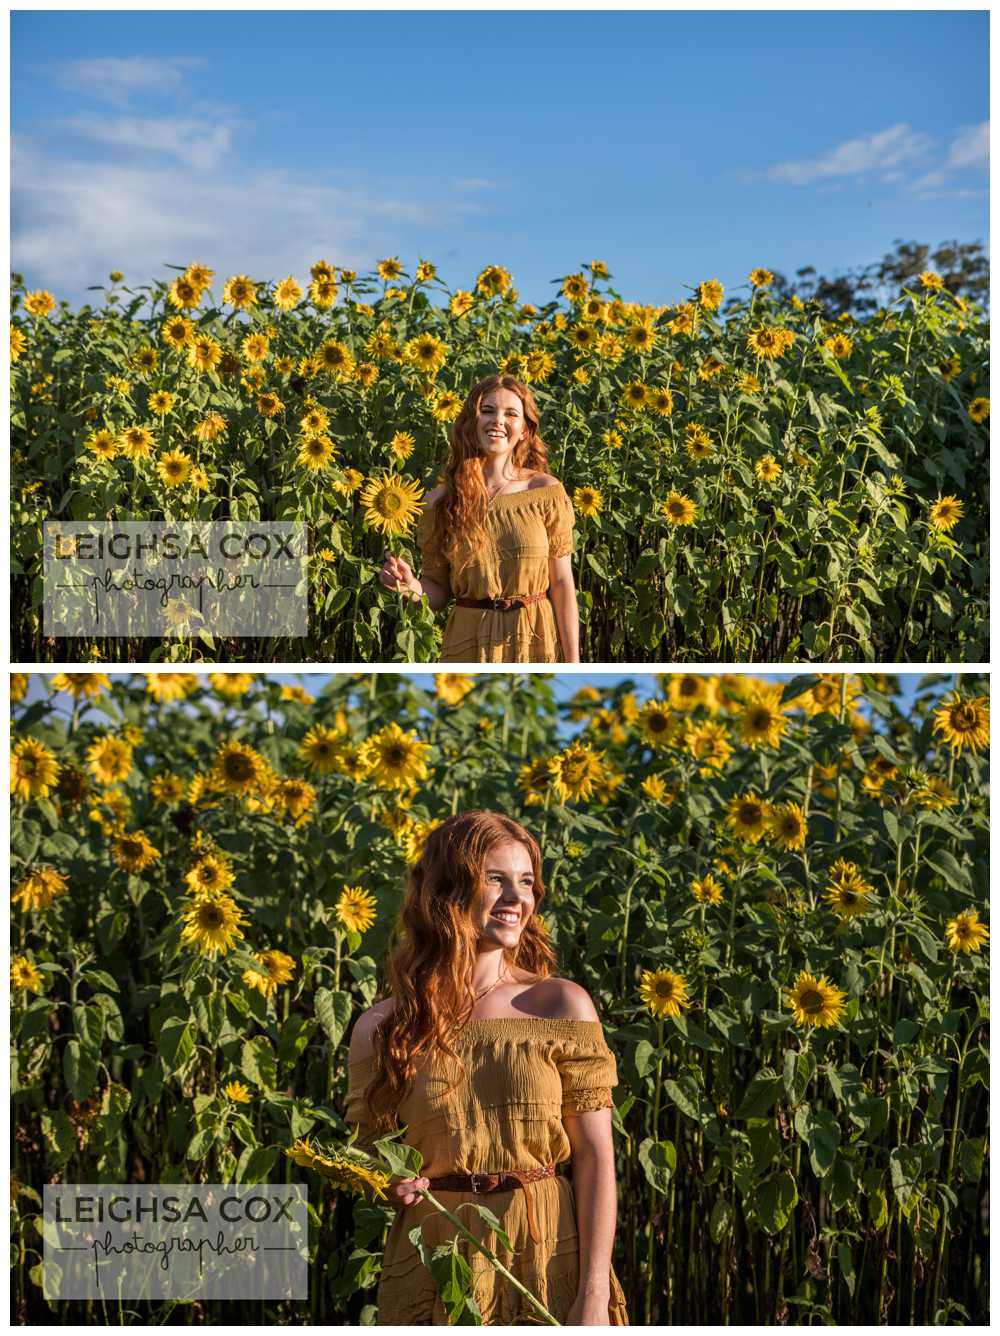 sunshine and sunflowers